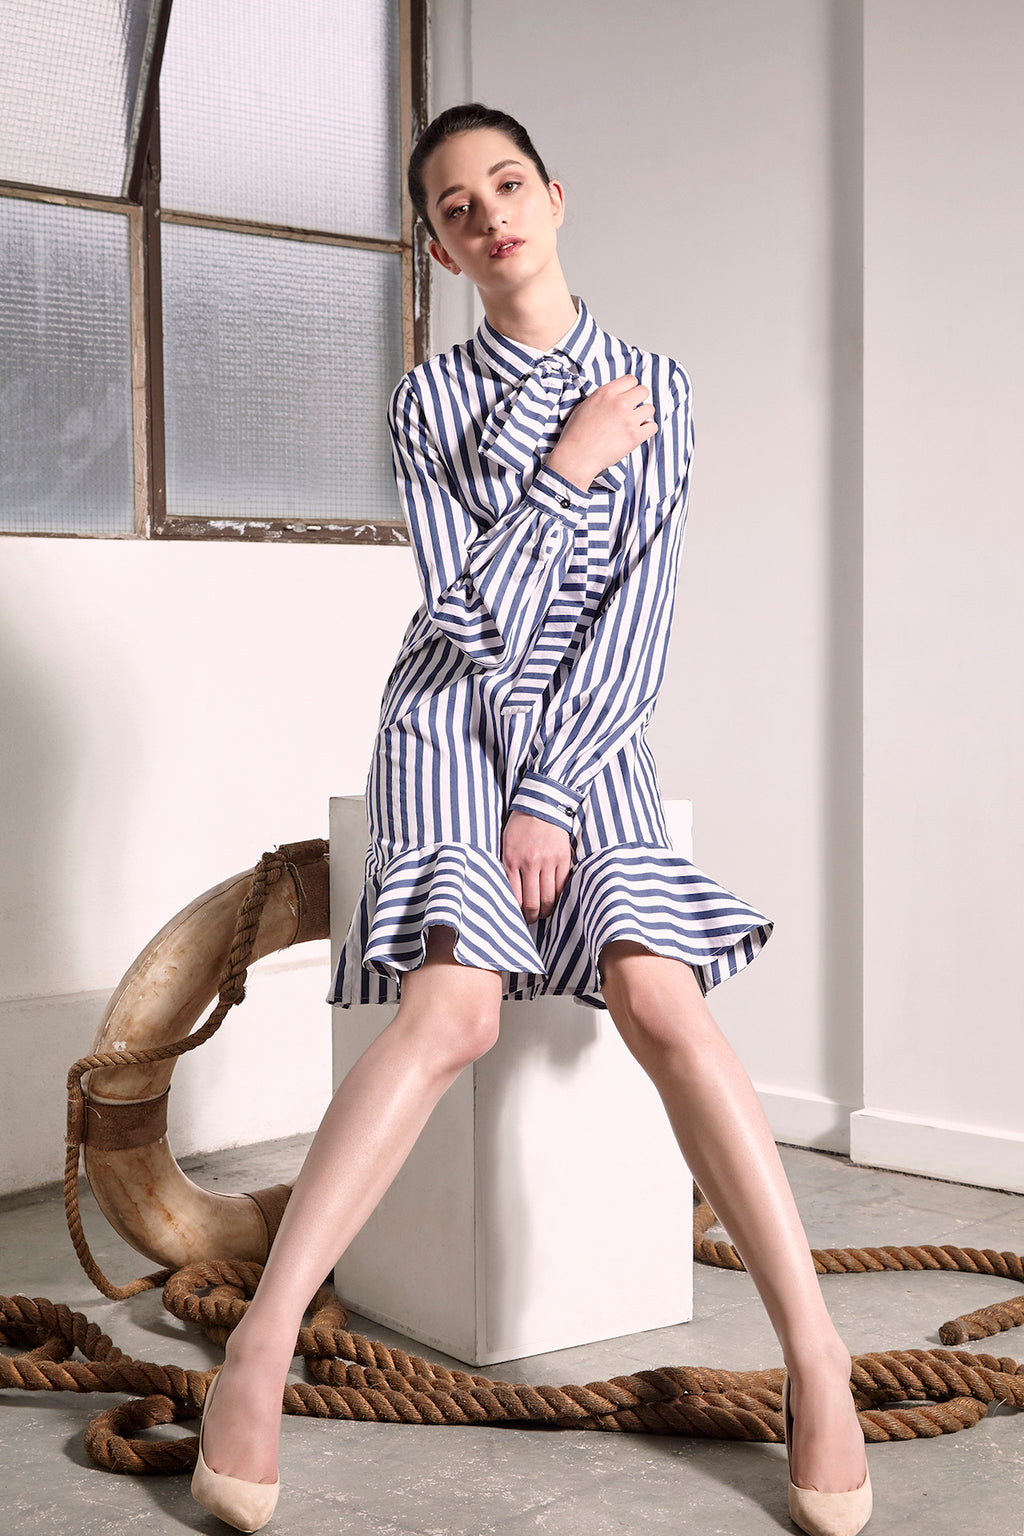 Striped Uji Dress Dresses The Fashion Advocate ethical Australian fashion designer boutique Melbourne sustainable clothes